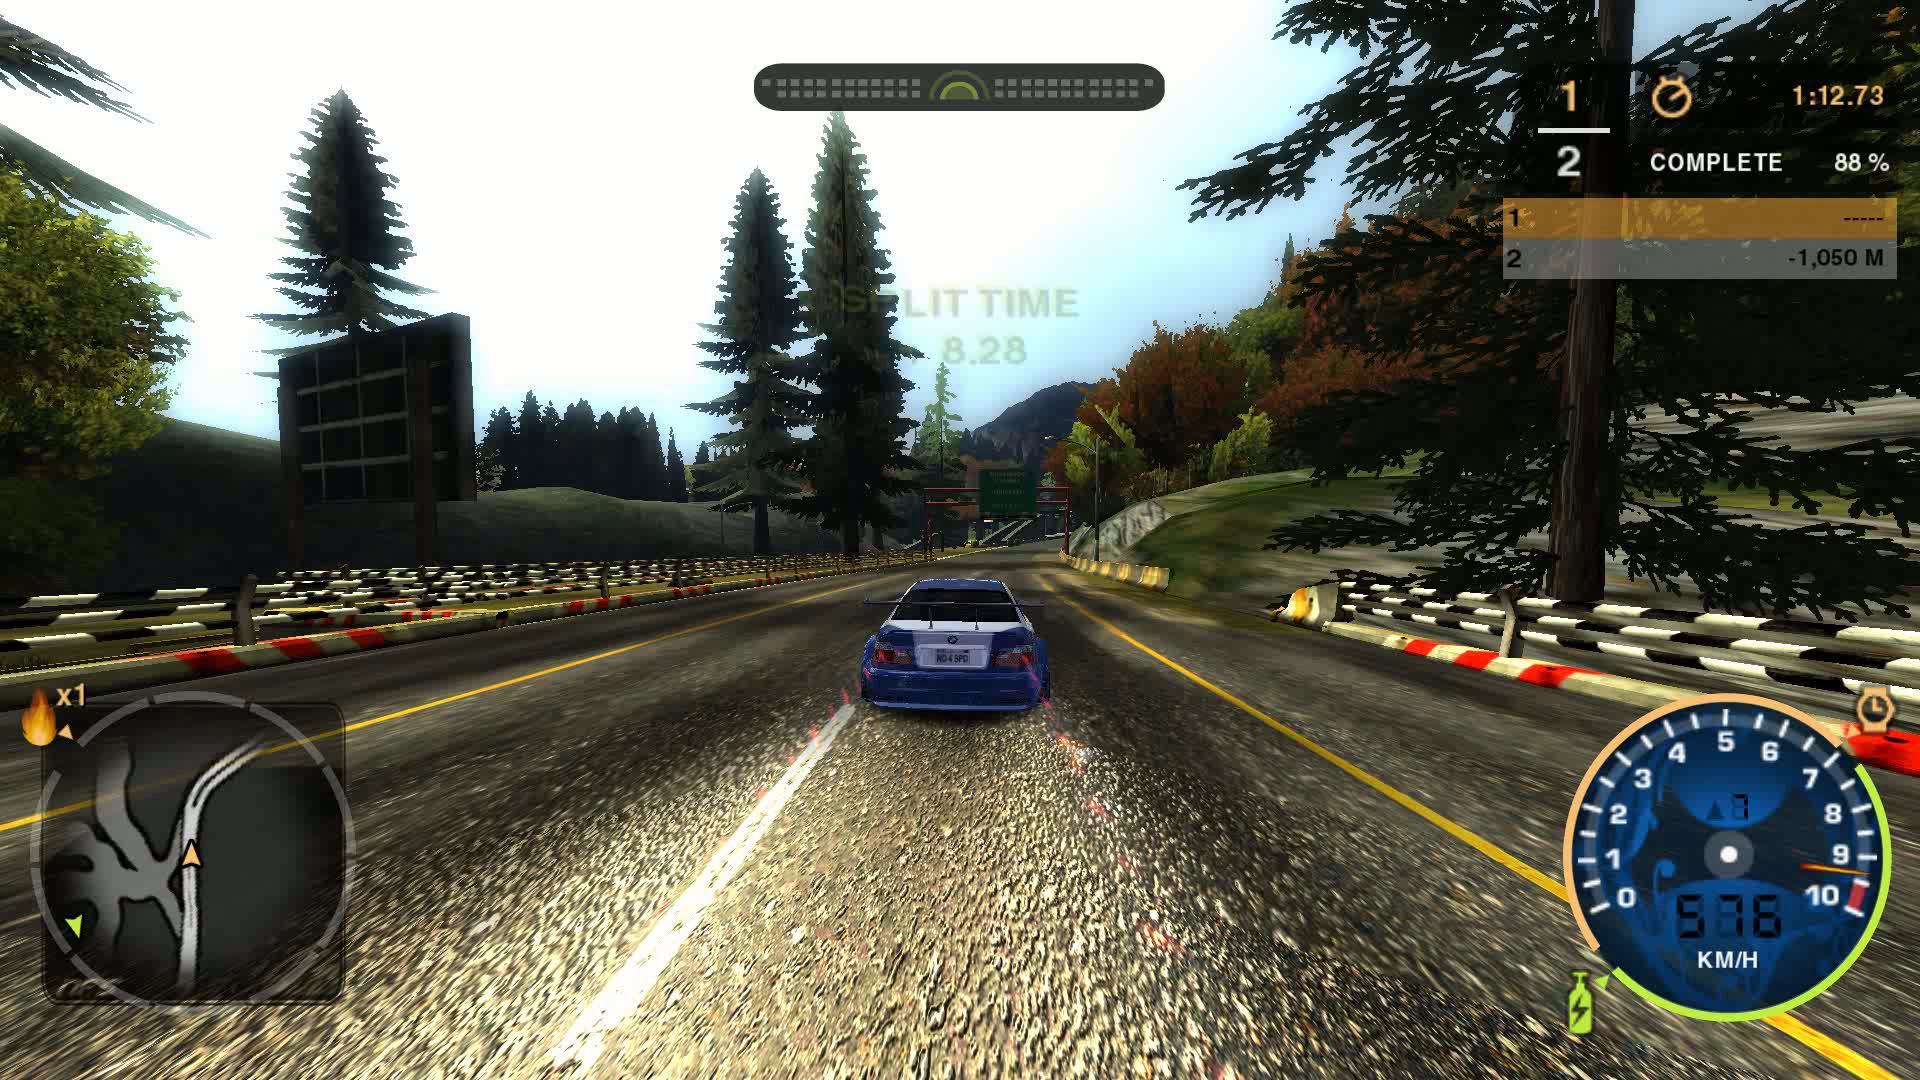 Кадр speed 2019-12-27 23-49-35-920 (00-05-33).jpg - Need for Speed: Most Wanted (2005)